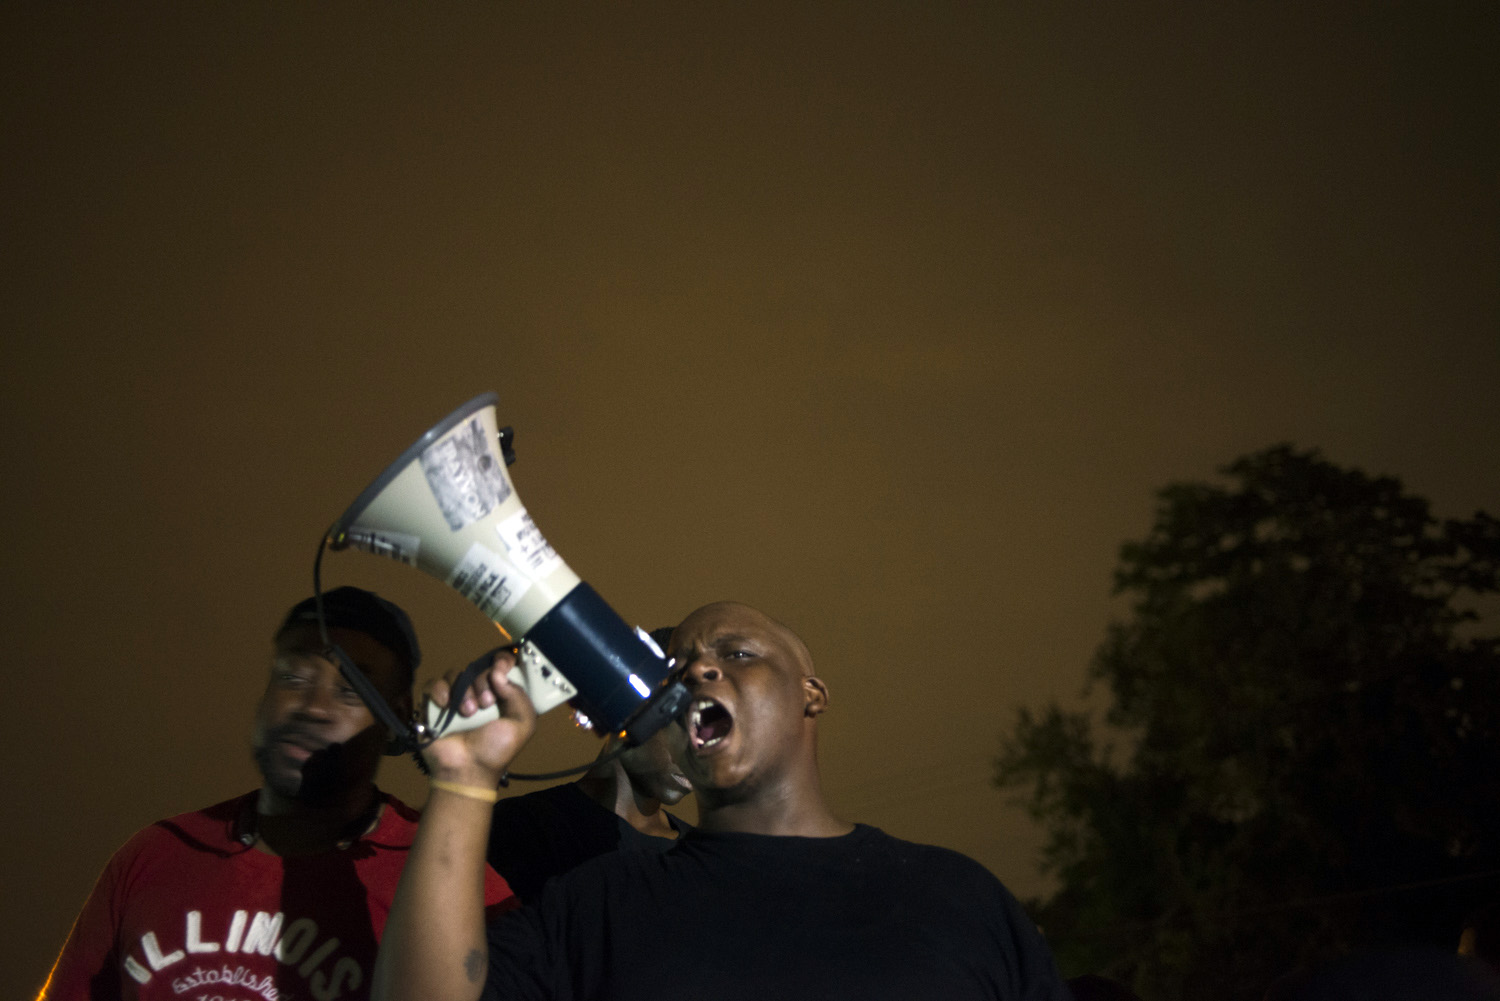 A demonstrator protests on Florissant Ave in Ferguson, Mo. on Aug. 16, 2014.